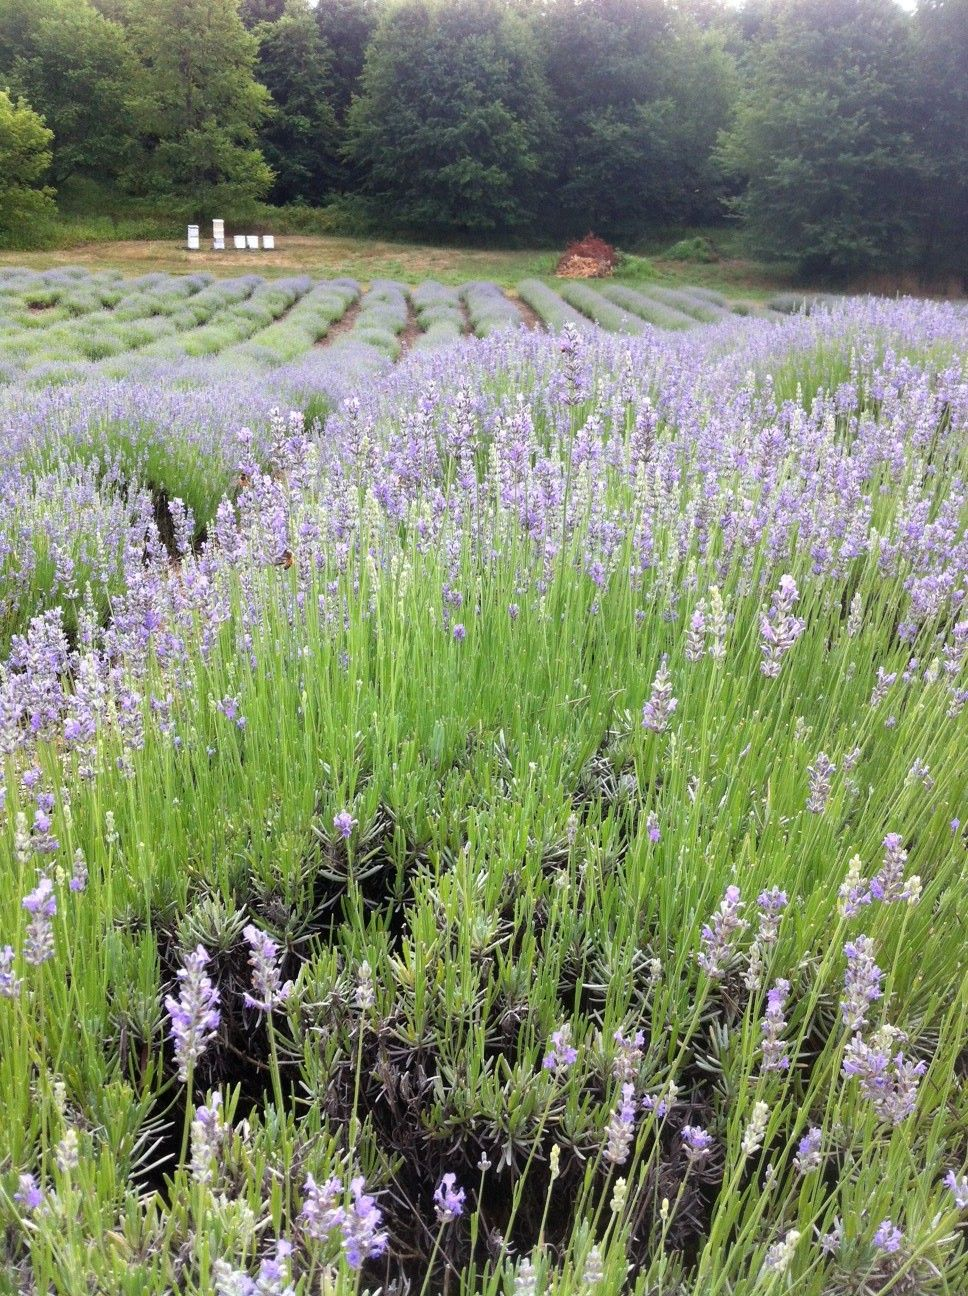 Lavender farm in Niles, MI, where you can pick your own lavender.